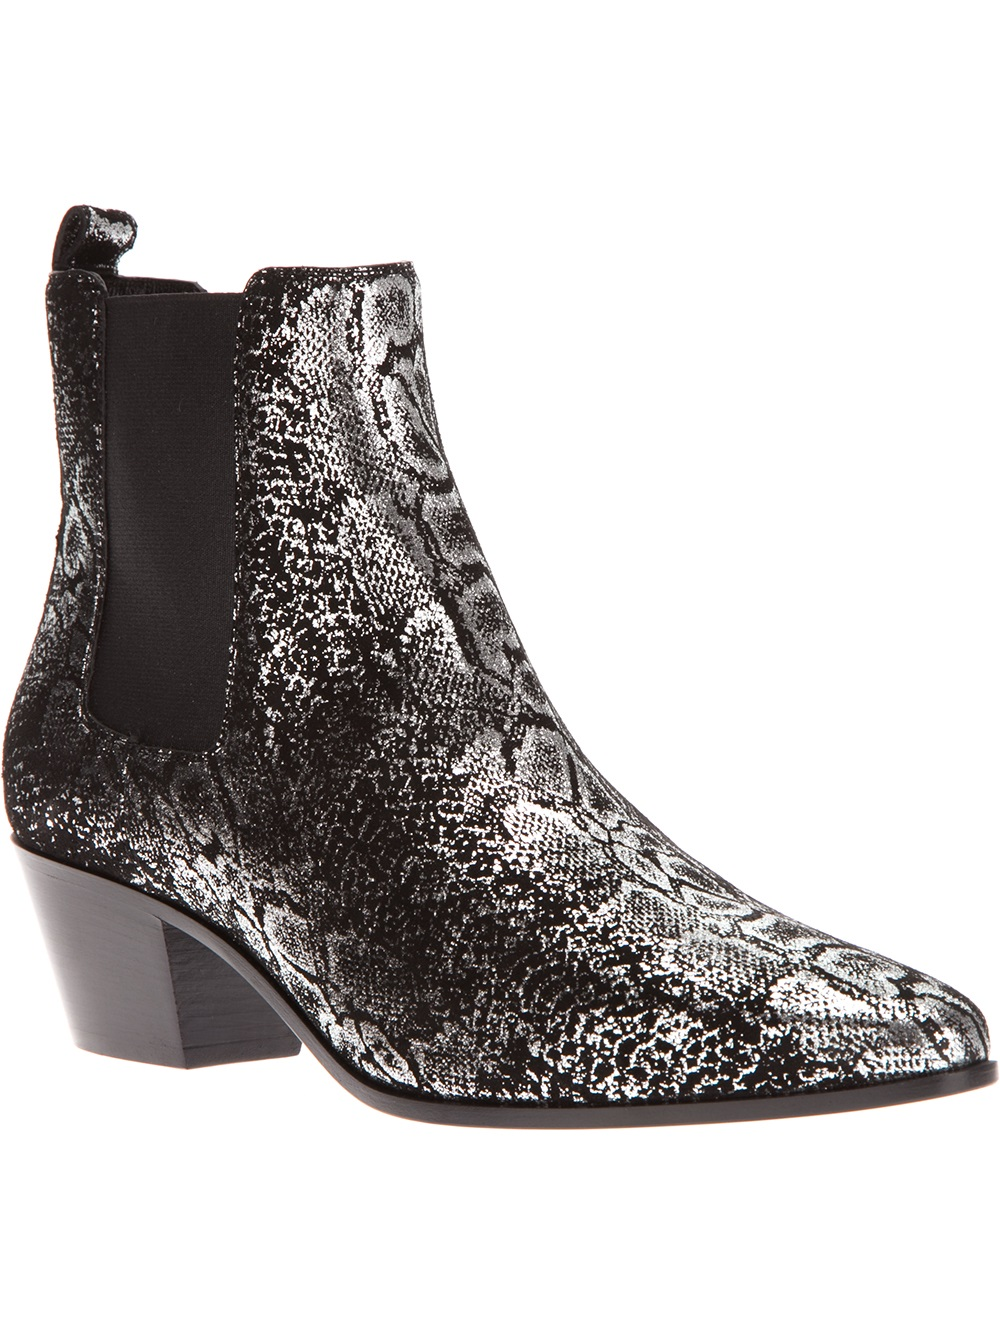 saint laurent snakeskin print chelsea boot in gray